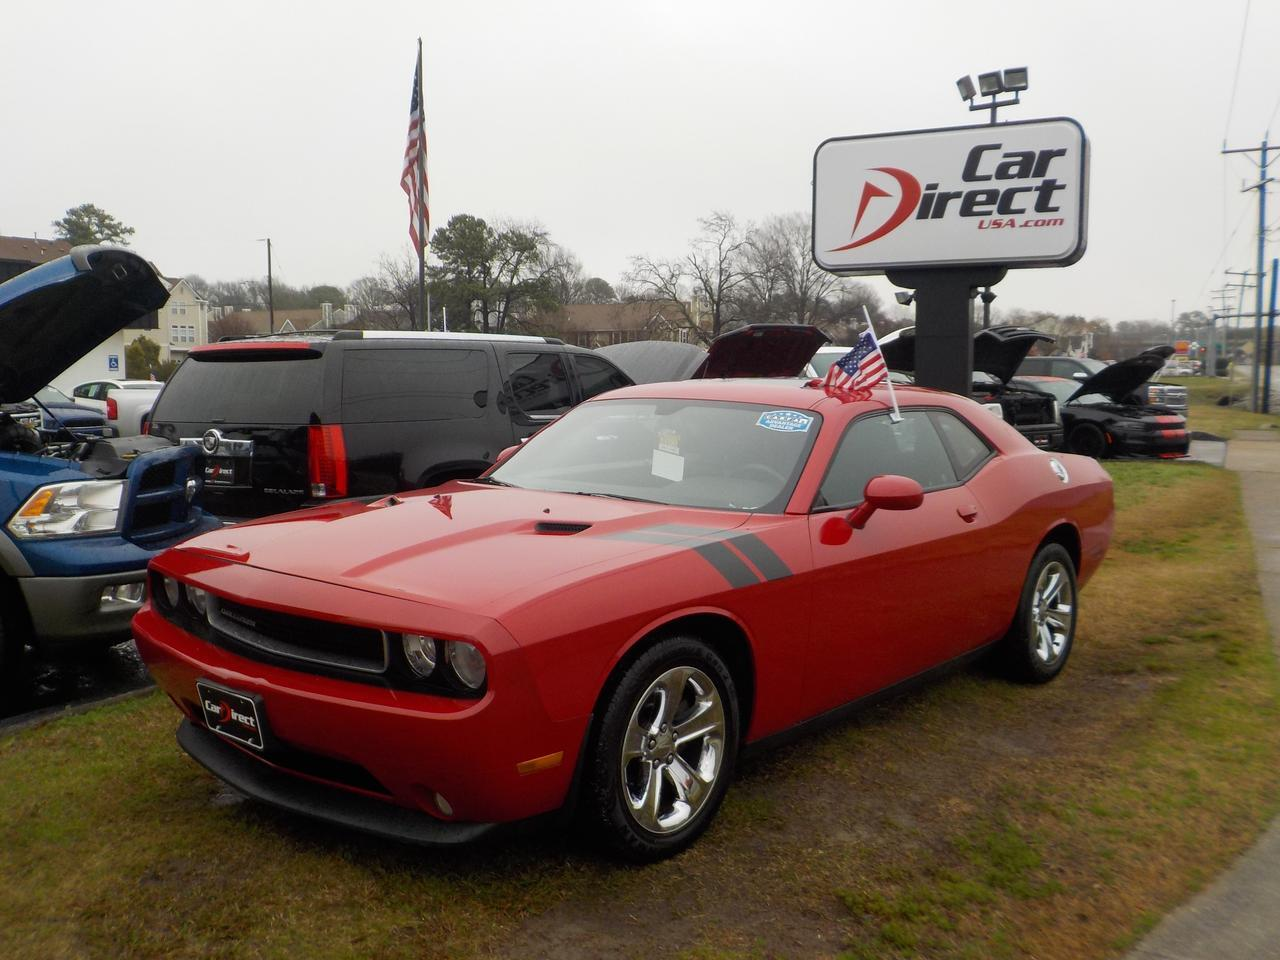 2013 DODGE CHALLENGER SXT COUPE RWD, WARRANTY, NAVIGATION, SUNROOF, KEYLESS START, PARKING SENSORS, HEATED SEATS, SUNROOF! Virginia Beach VA